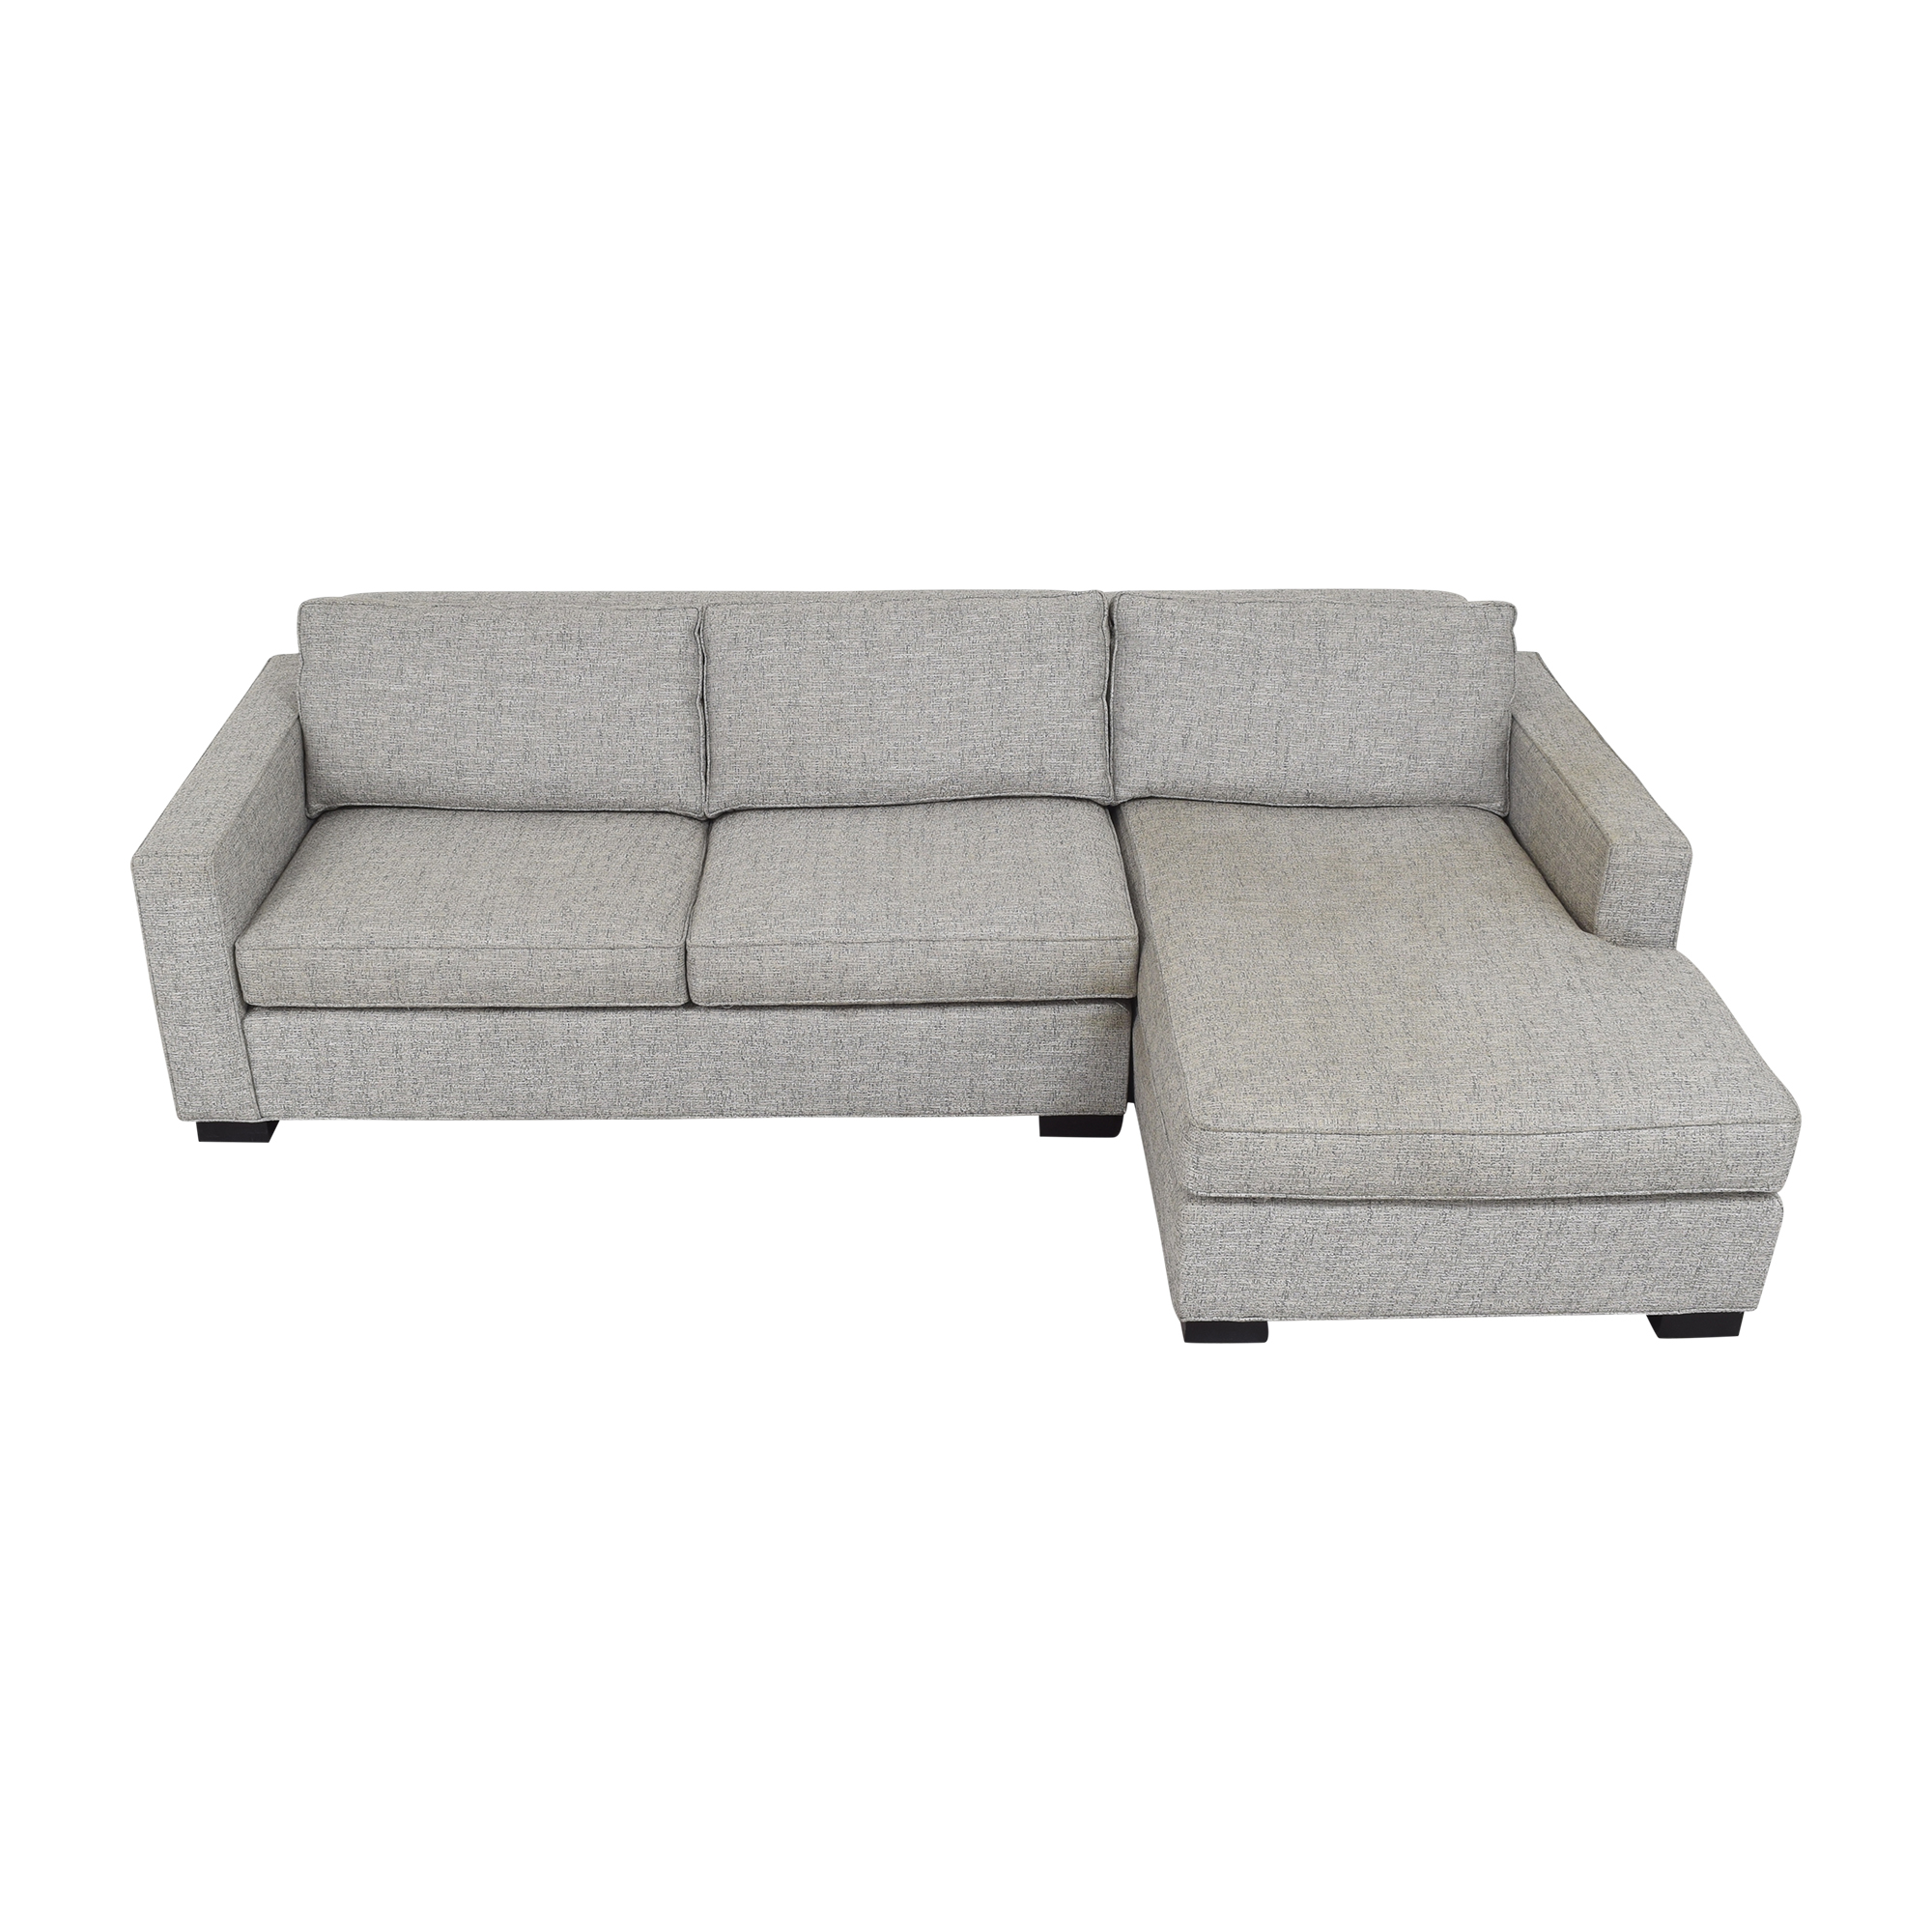 Mitchell Gold + Bob Williams Chaise Sectional sale